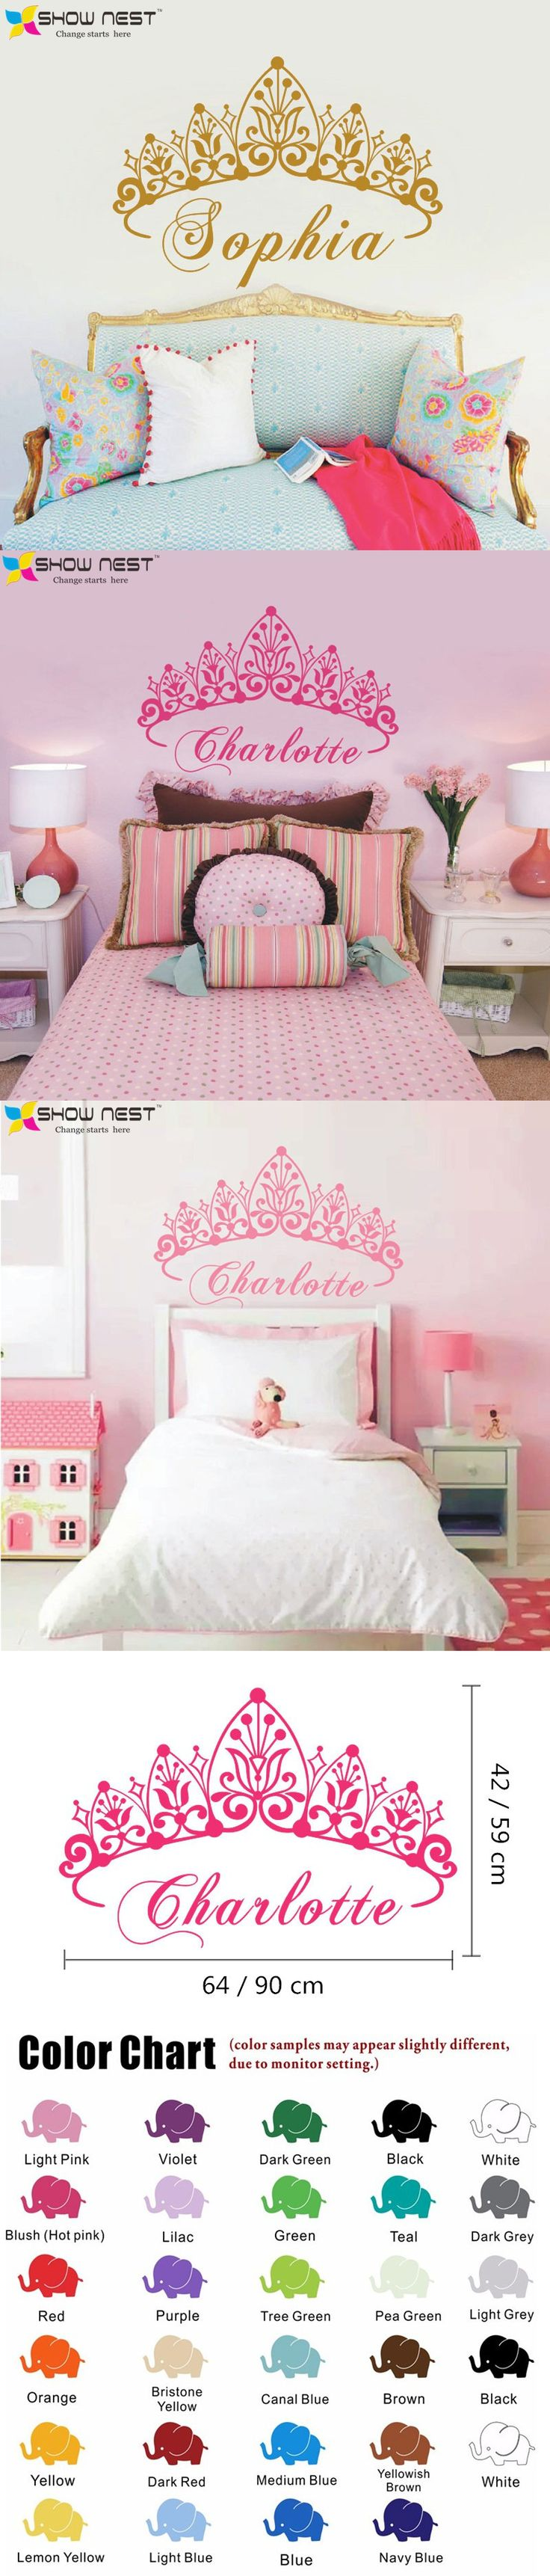 Baby Girl Crown Wall Sticker Custom Princess Name Decals Home Decor Wall Sticker For Kids Room Girls Bedroom Wall Art Decoration